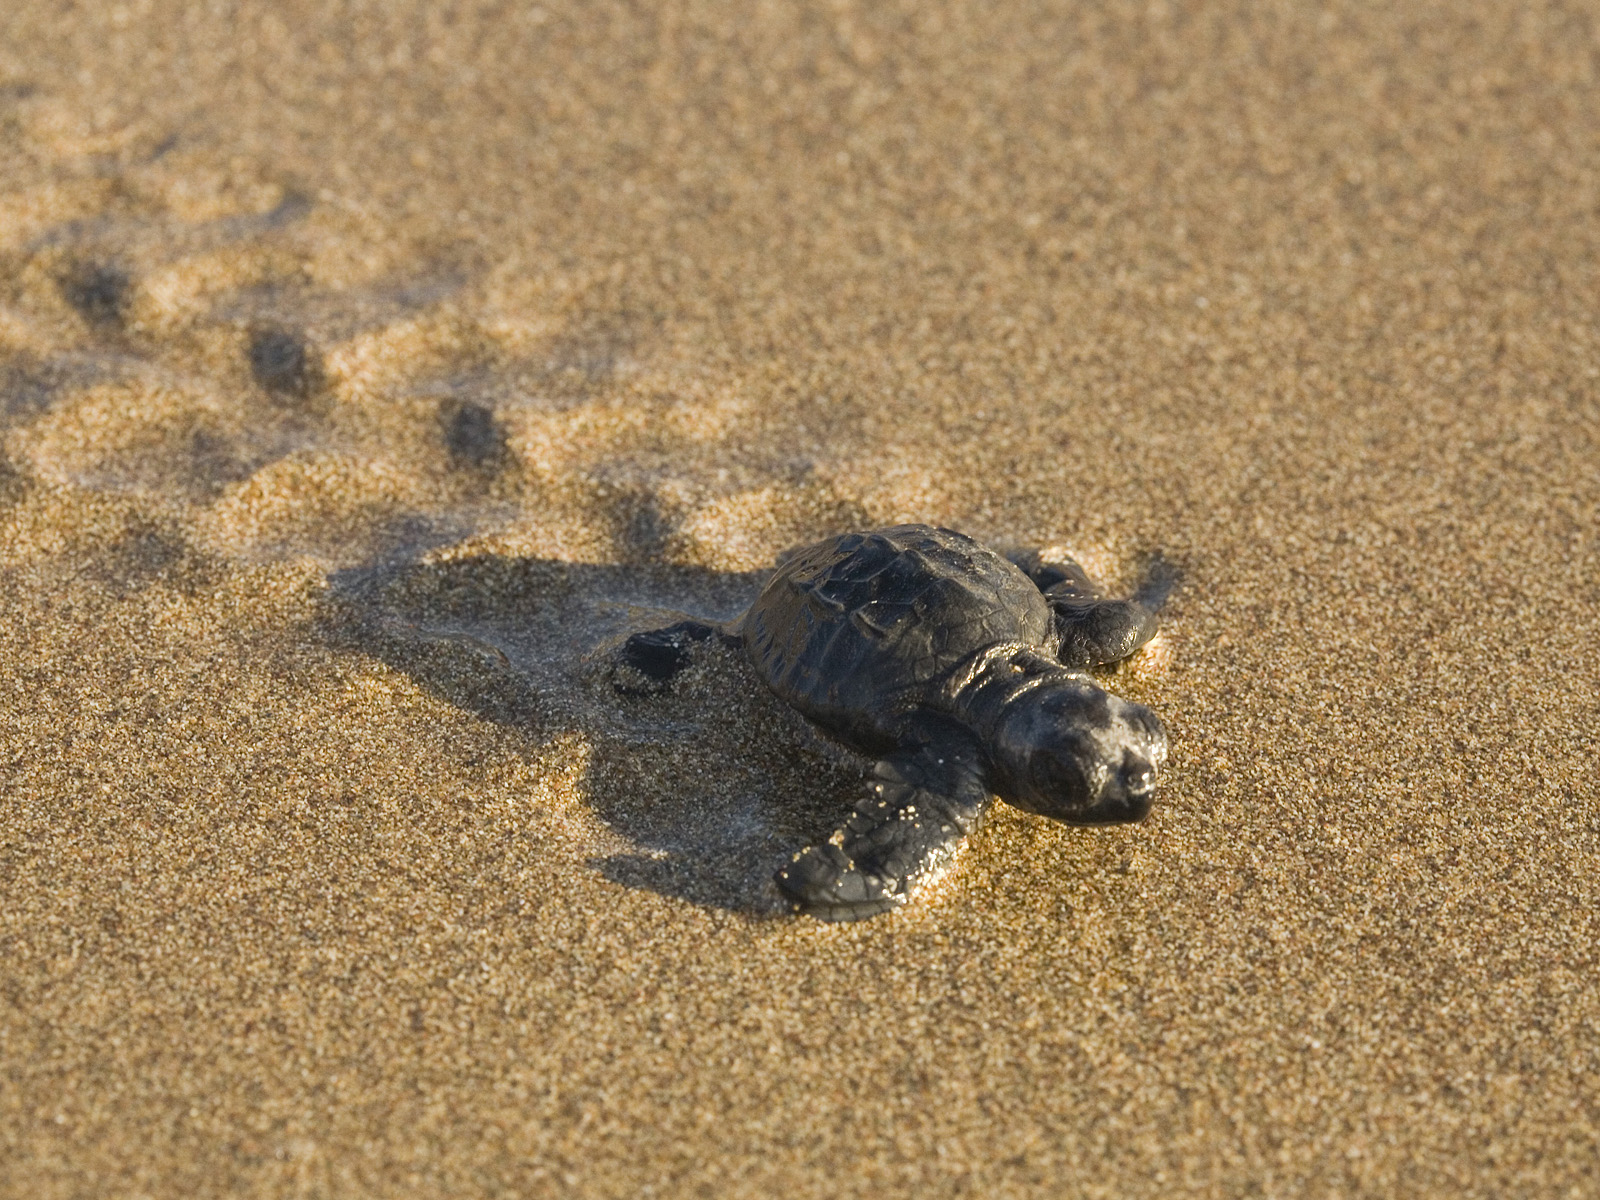 Cute baby sea turtles in the water - photo#27